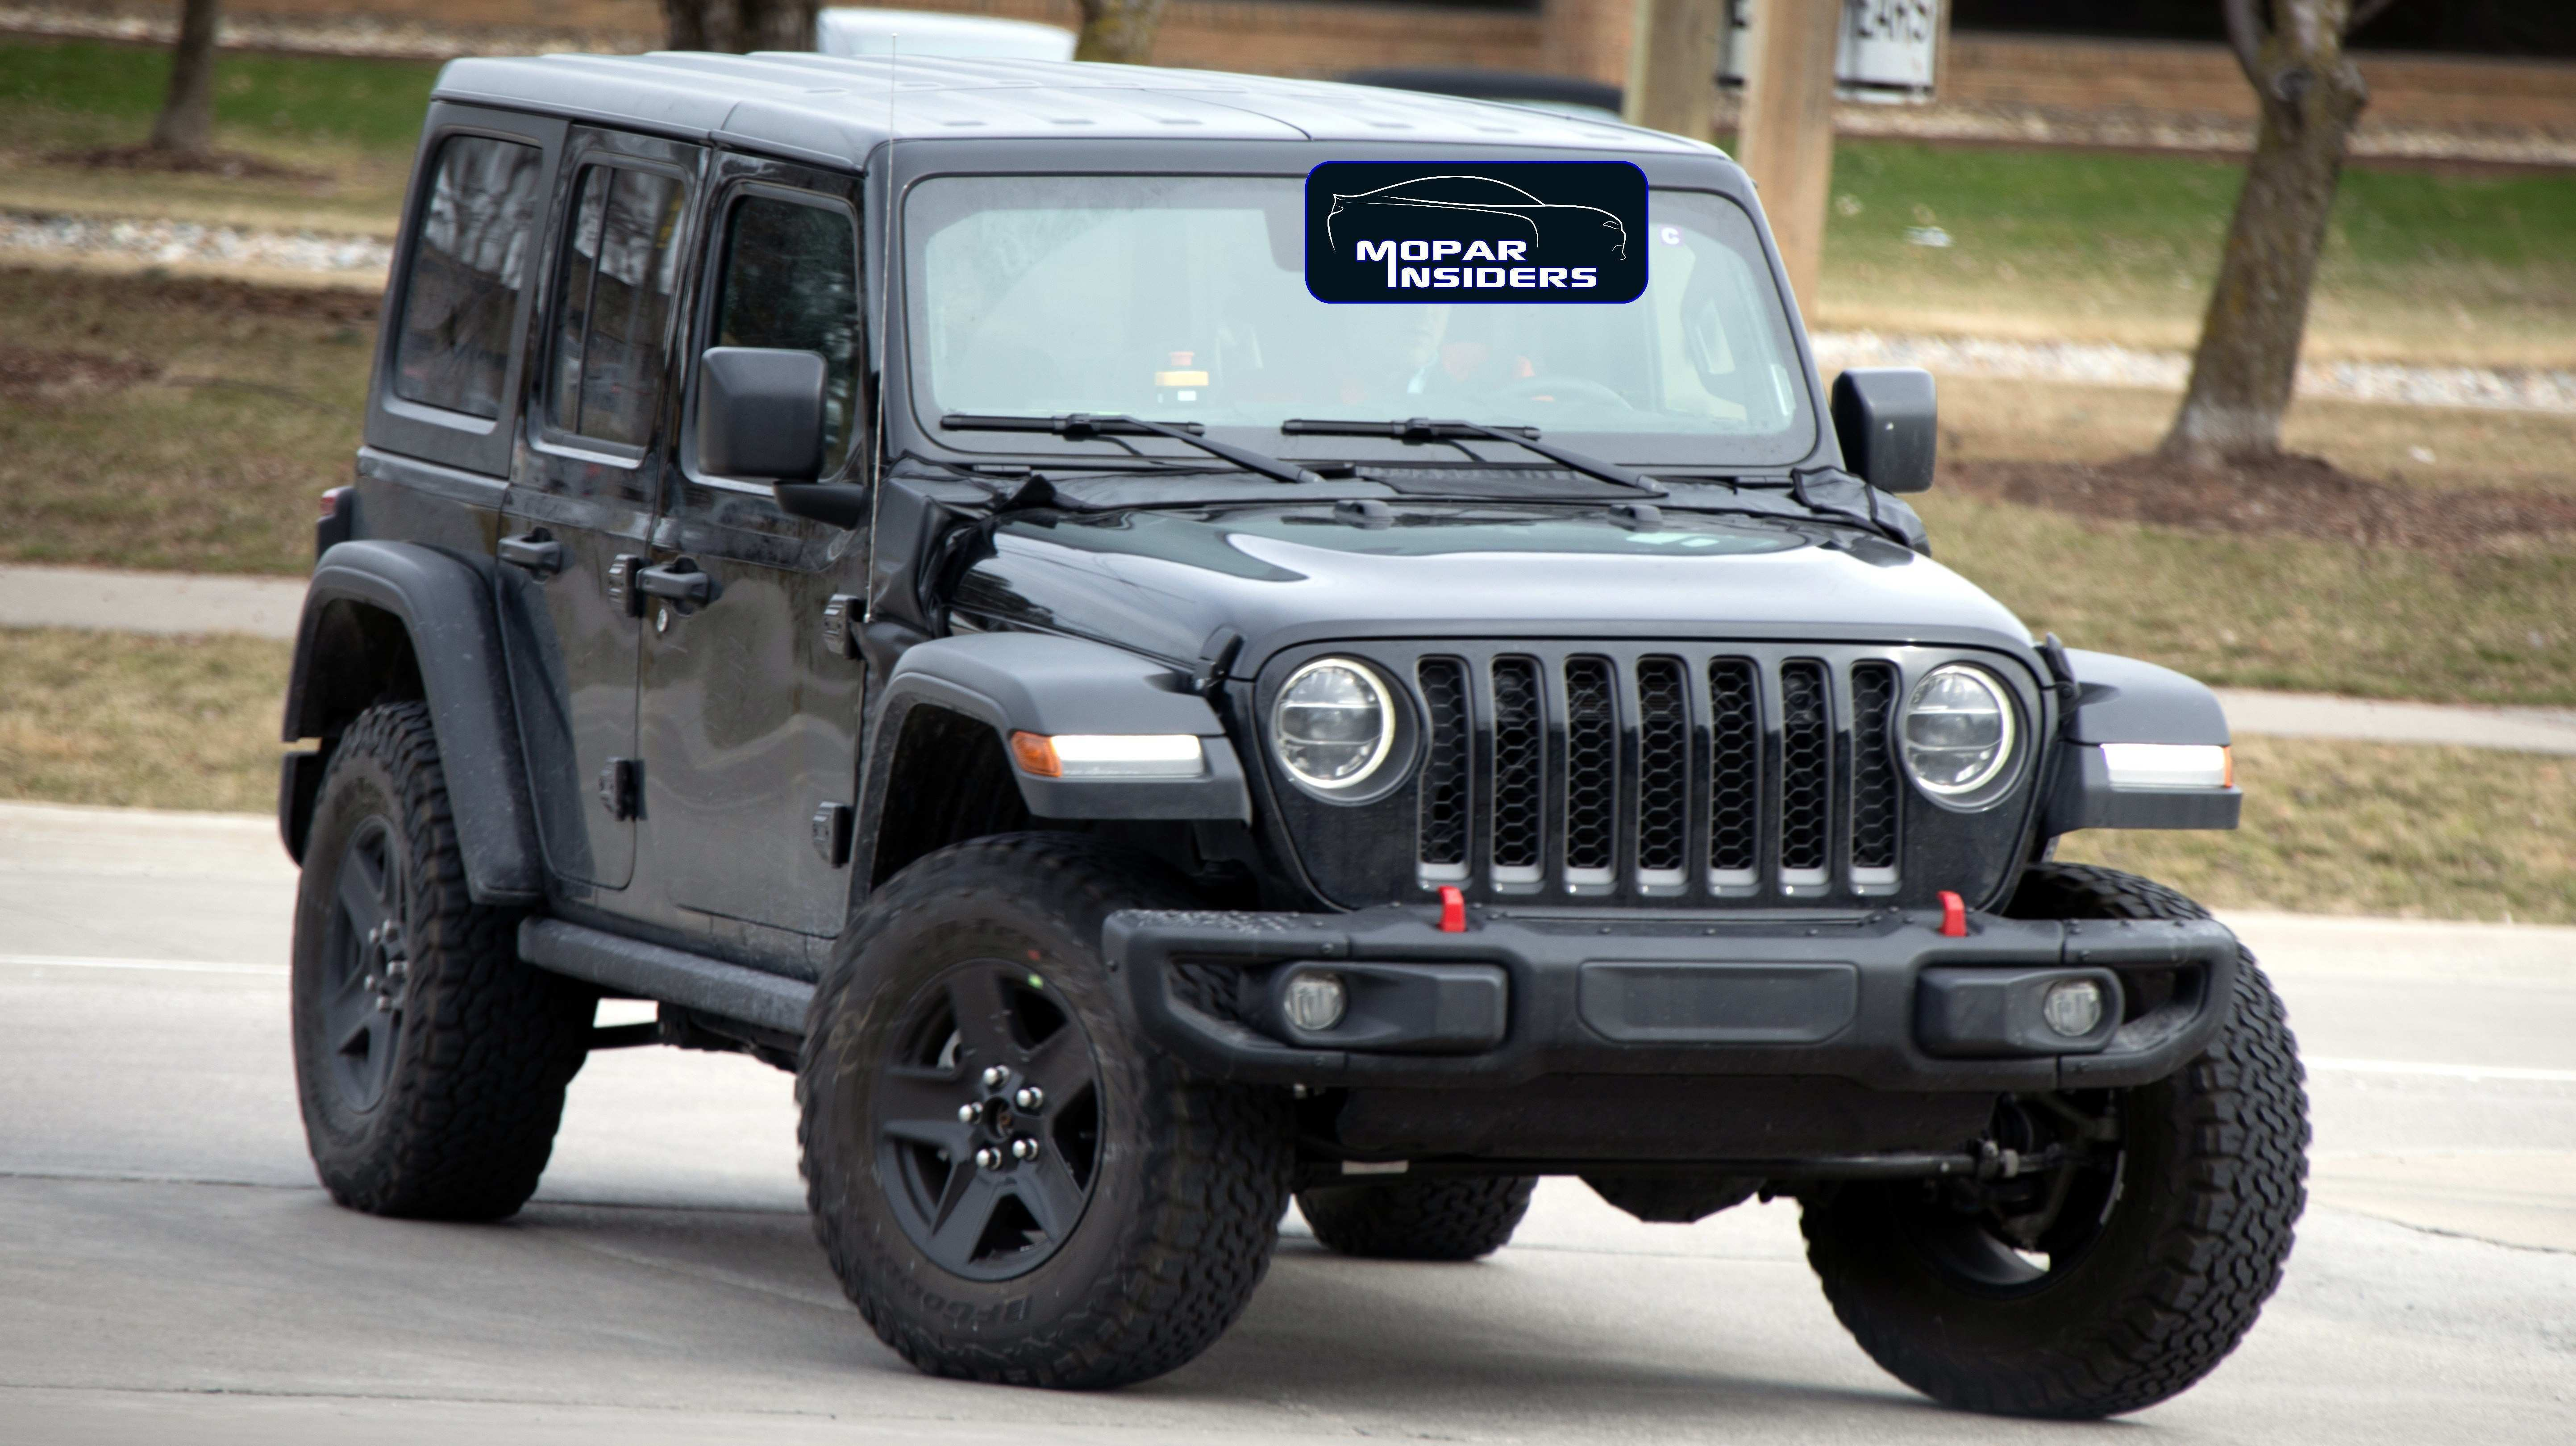 83 The Best 2020 Jeep Jl Rumors New Concept